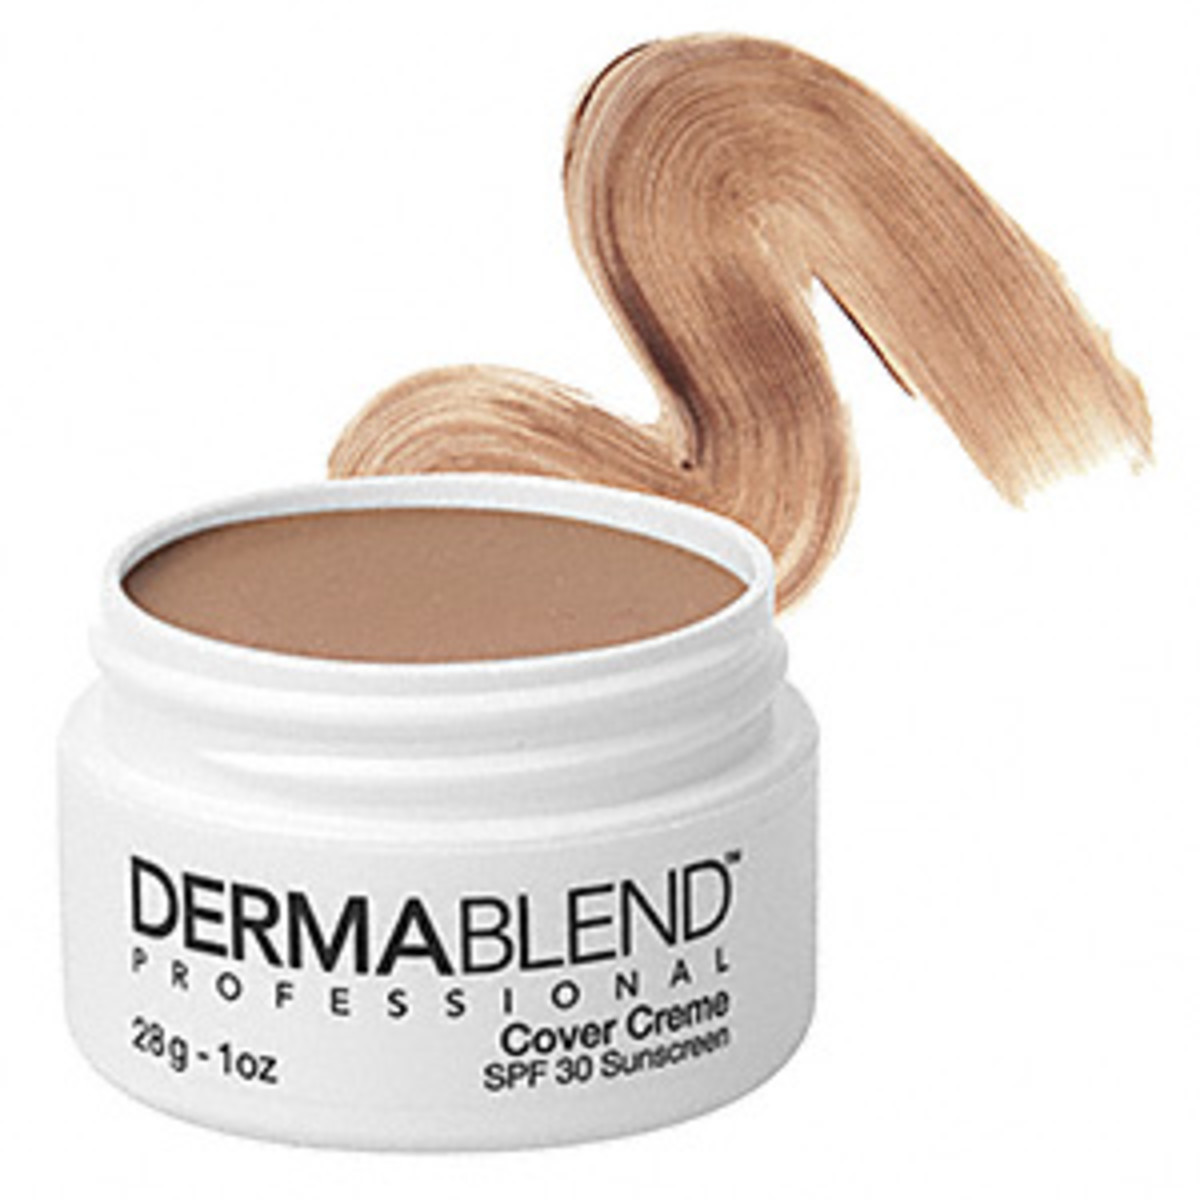 Dermablend-Profesional-Cover-Creme